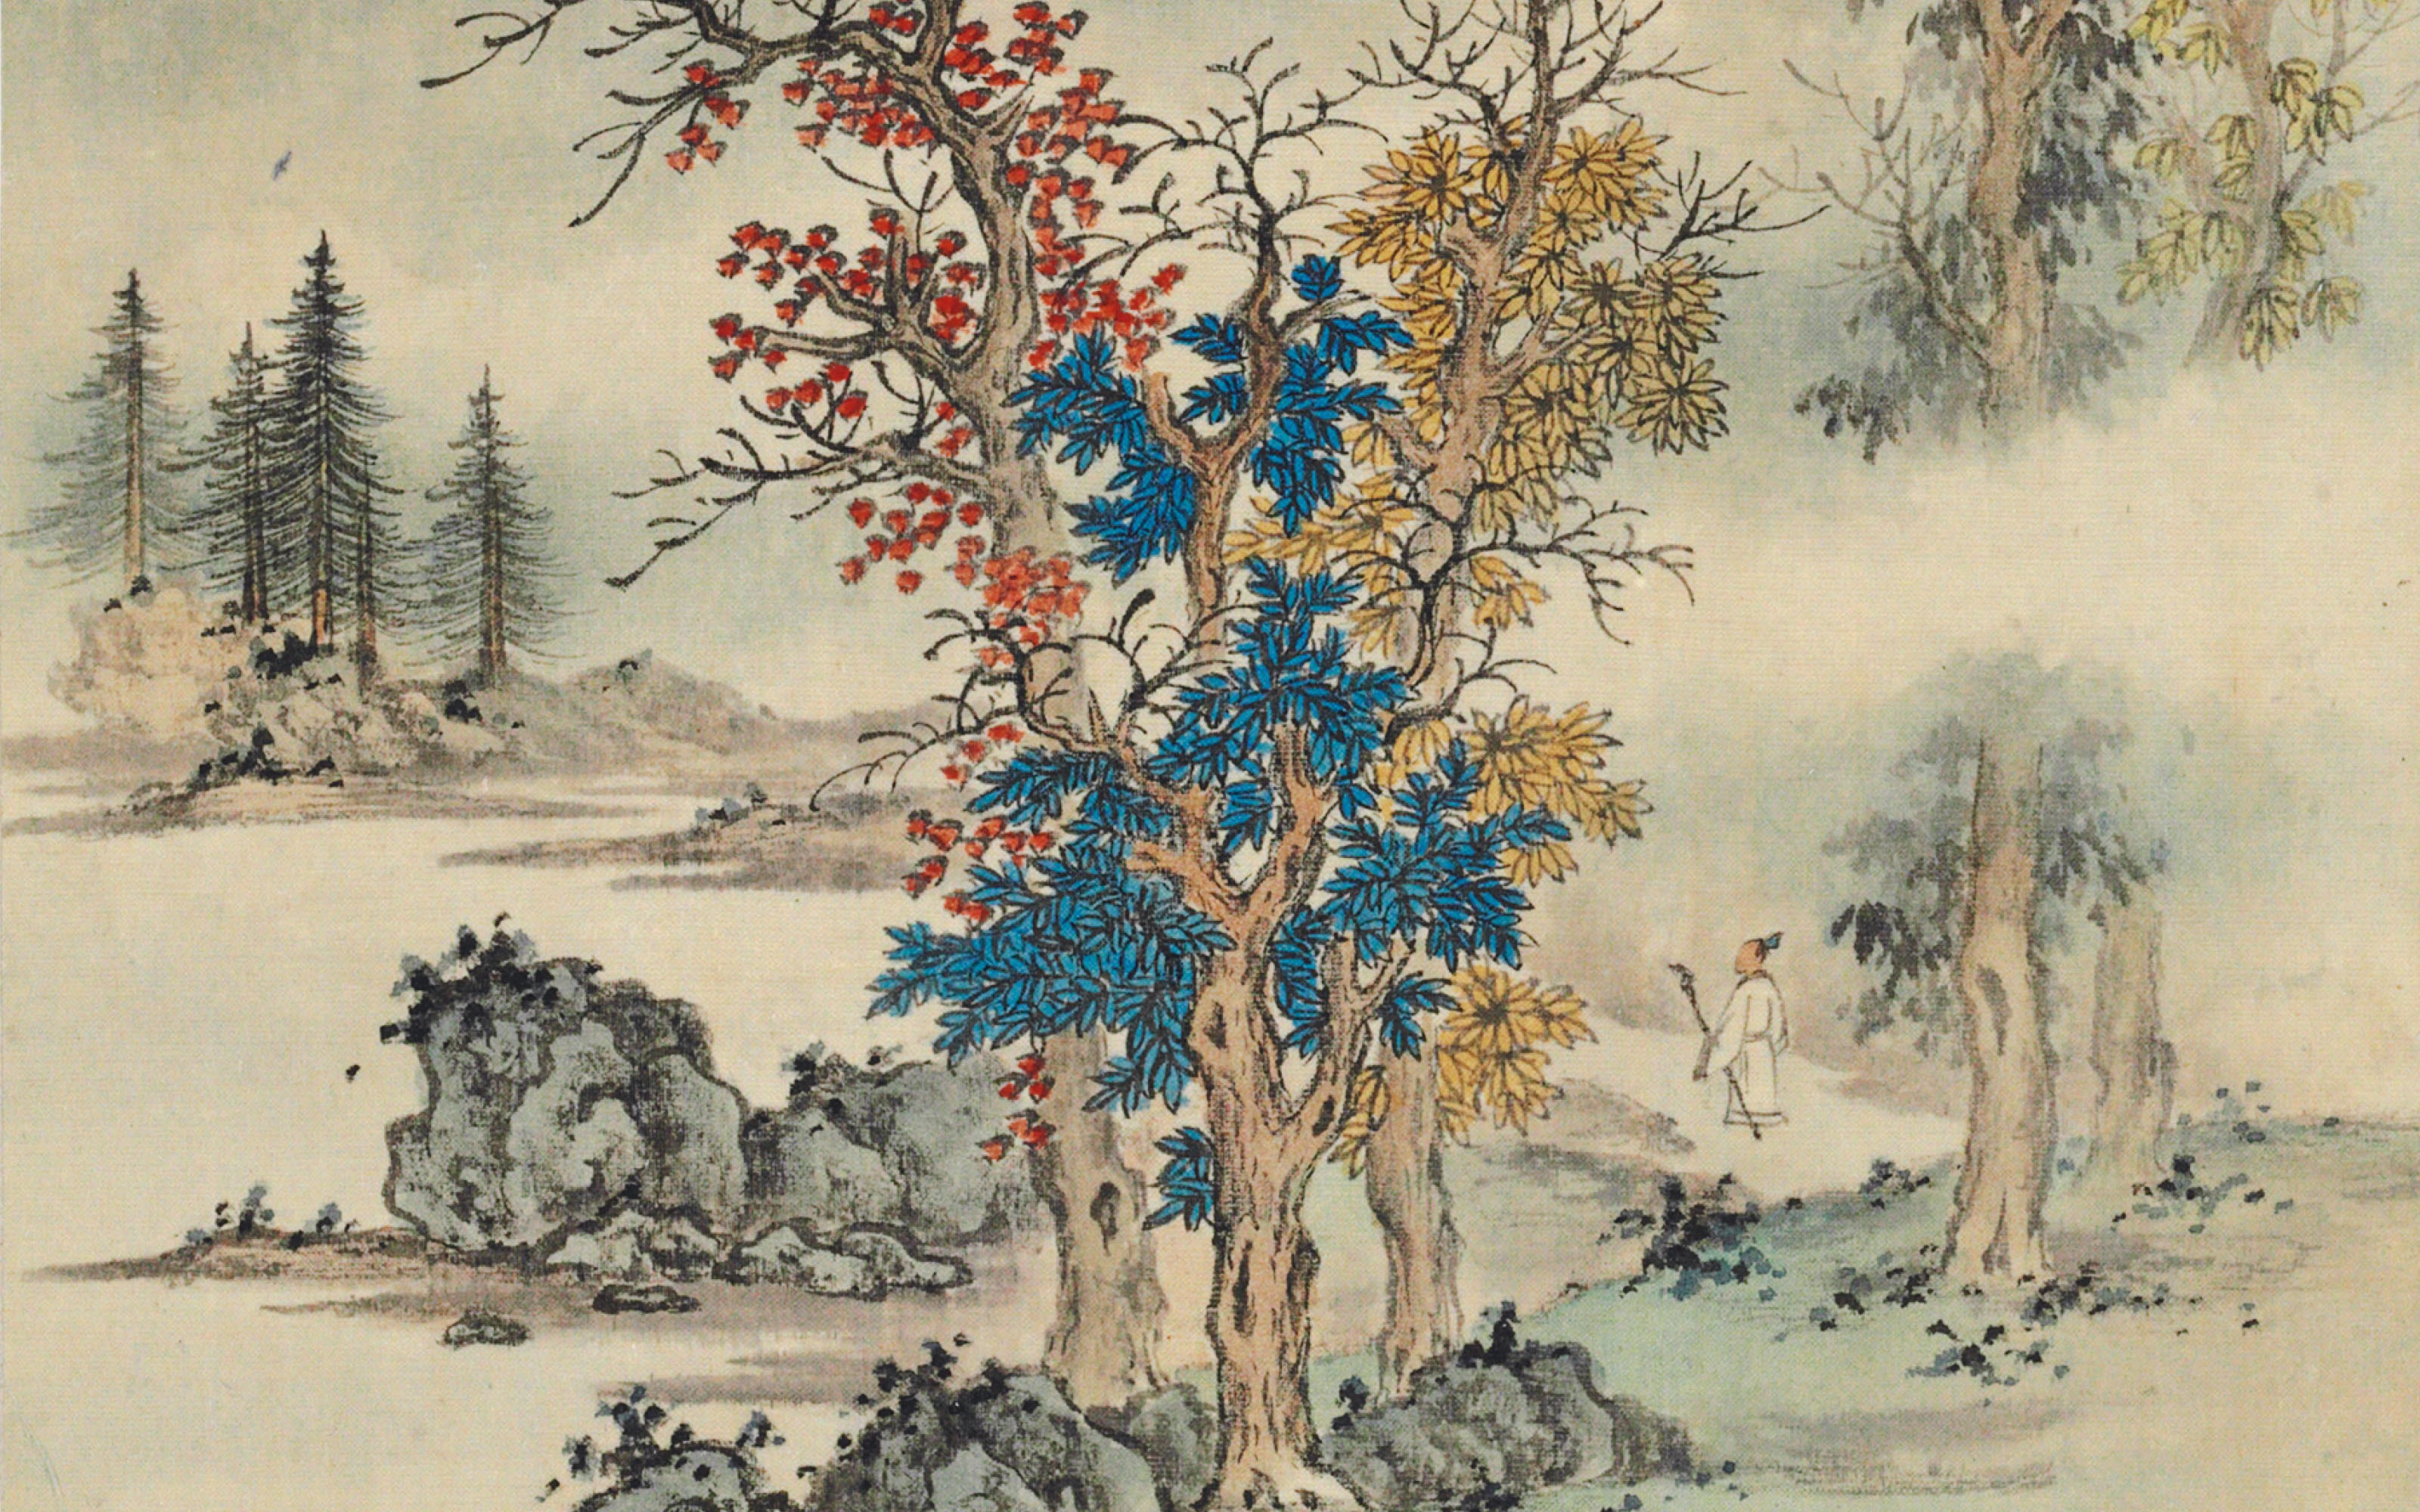 中国书画 auction at Christies